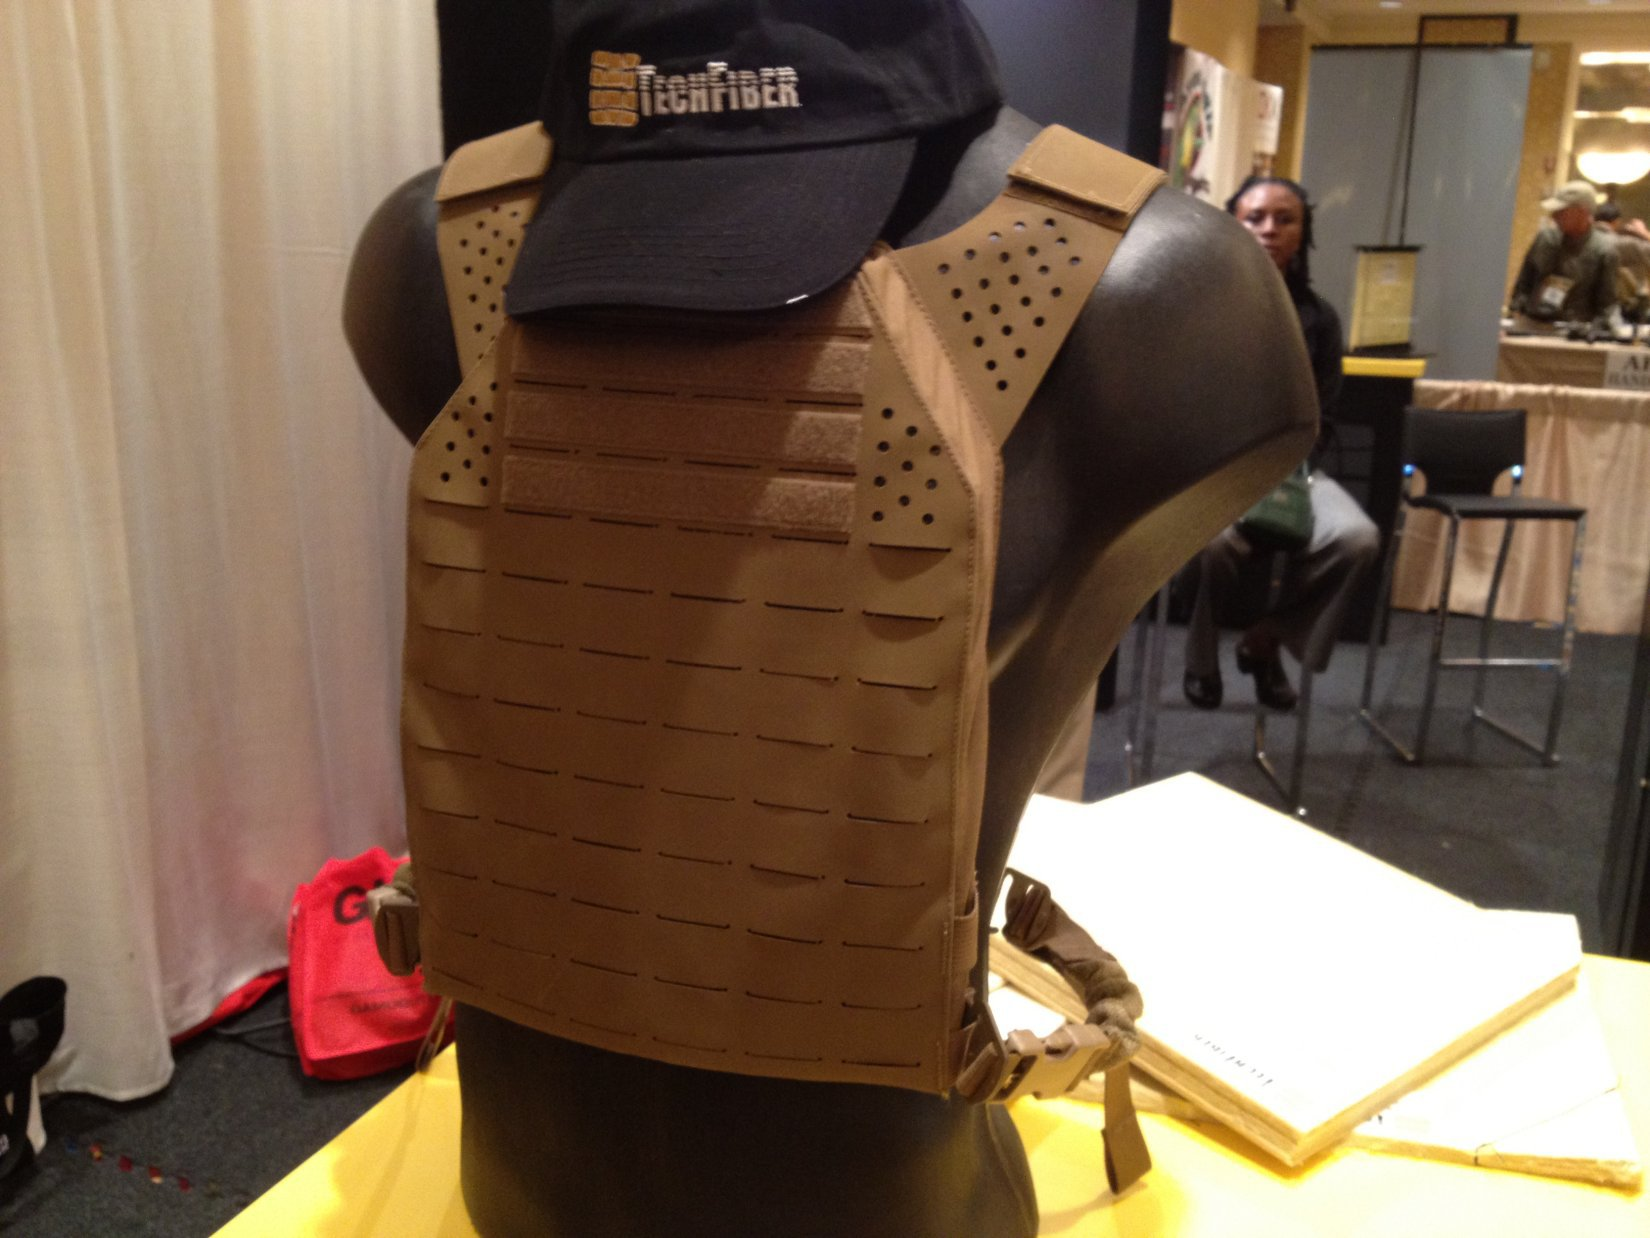 TechFiber T-Flex SH/SA Unidirectional Ballistic Fabric with Teijin Aramid Twaron or DuPont Kevlar Aramid Fiber for Tactical Armor Carriers/Body Armor (Soft Armor Panels and Hard Armor Plates) and Vehicle Armor (Video!)